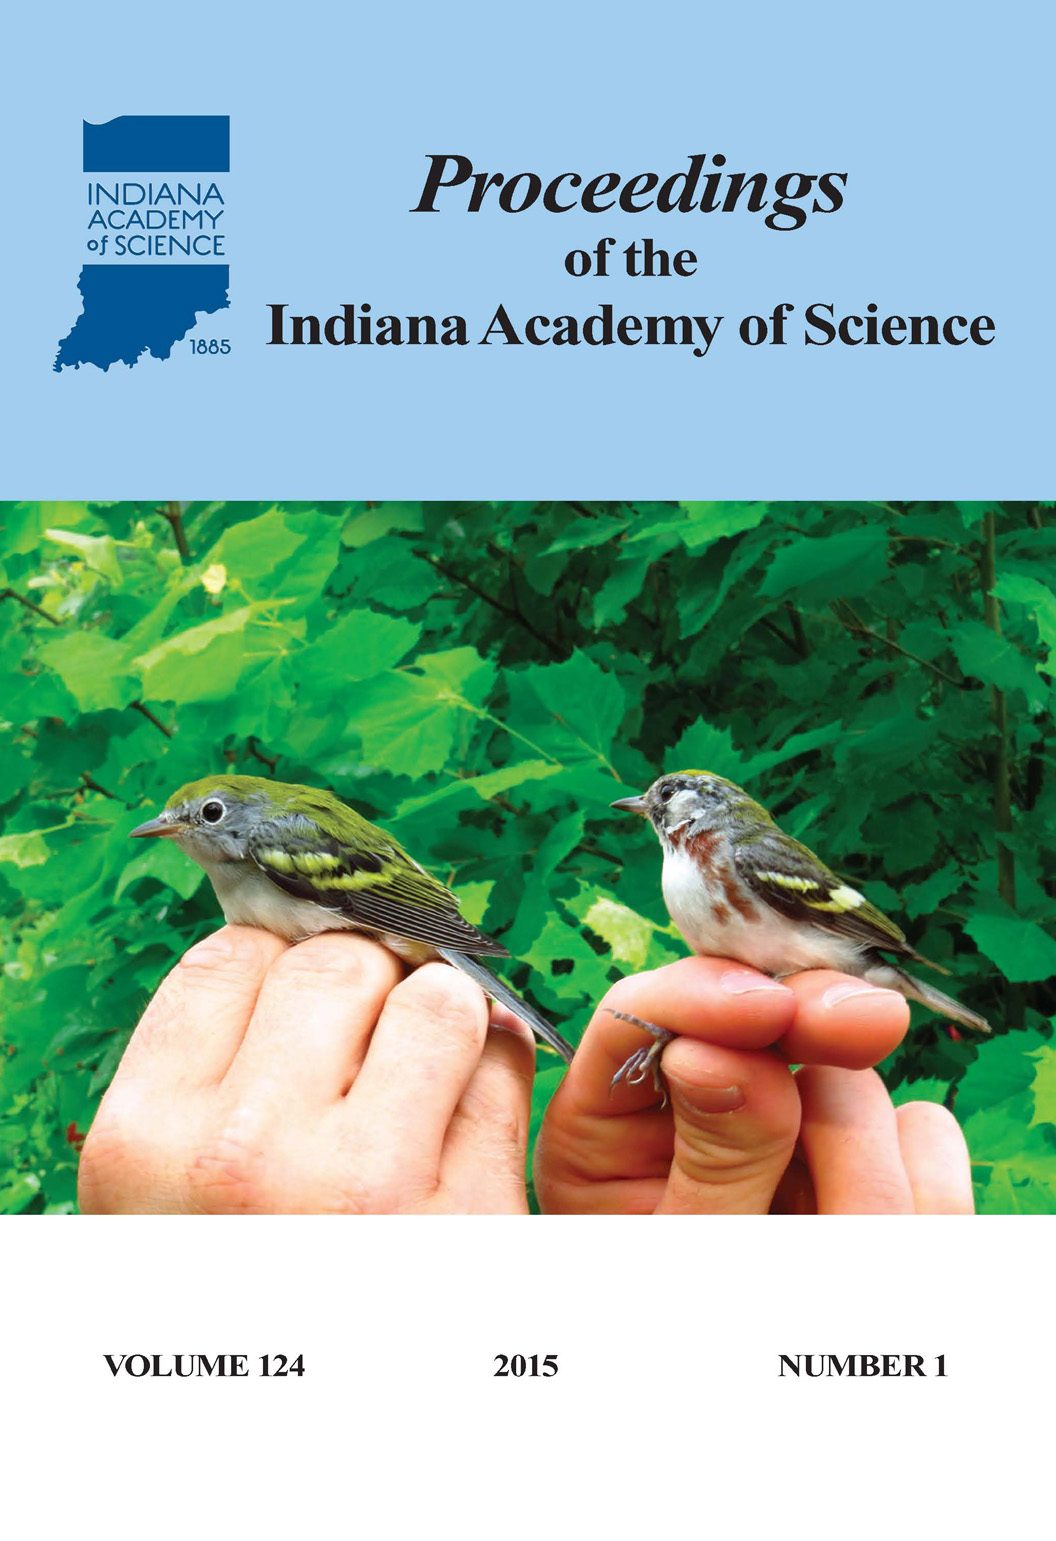 Proceedings of the Indiana Academy of Science 124:1 2015